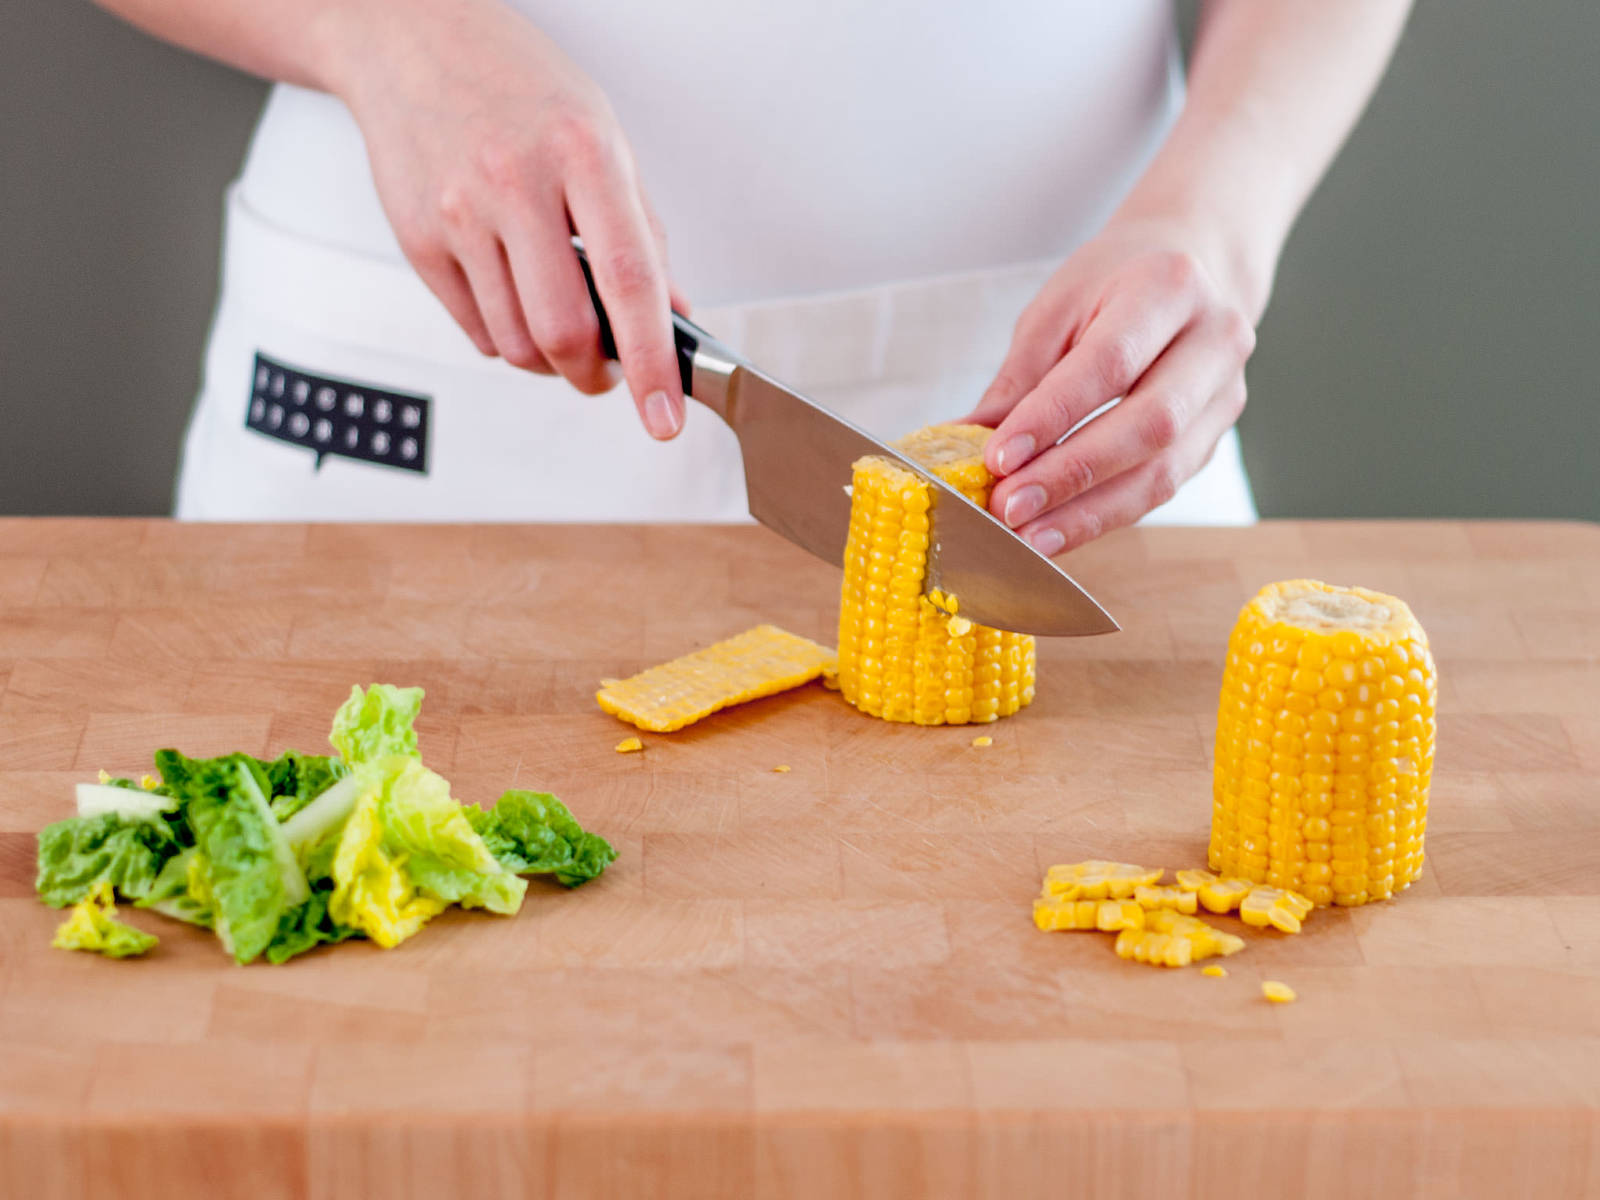 Roughly chop cilantro. Finely dice parsley and chives. Cut romaine lettuce into bite-sized pieces. Cut corn from the cob.